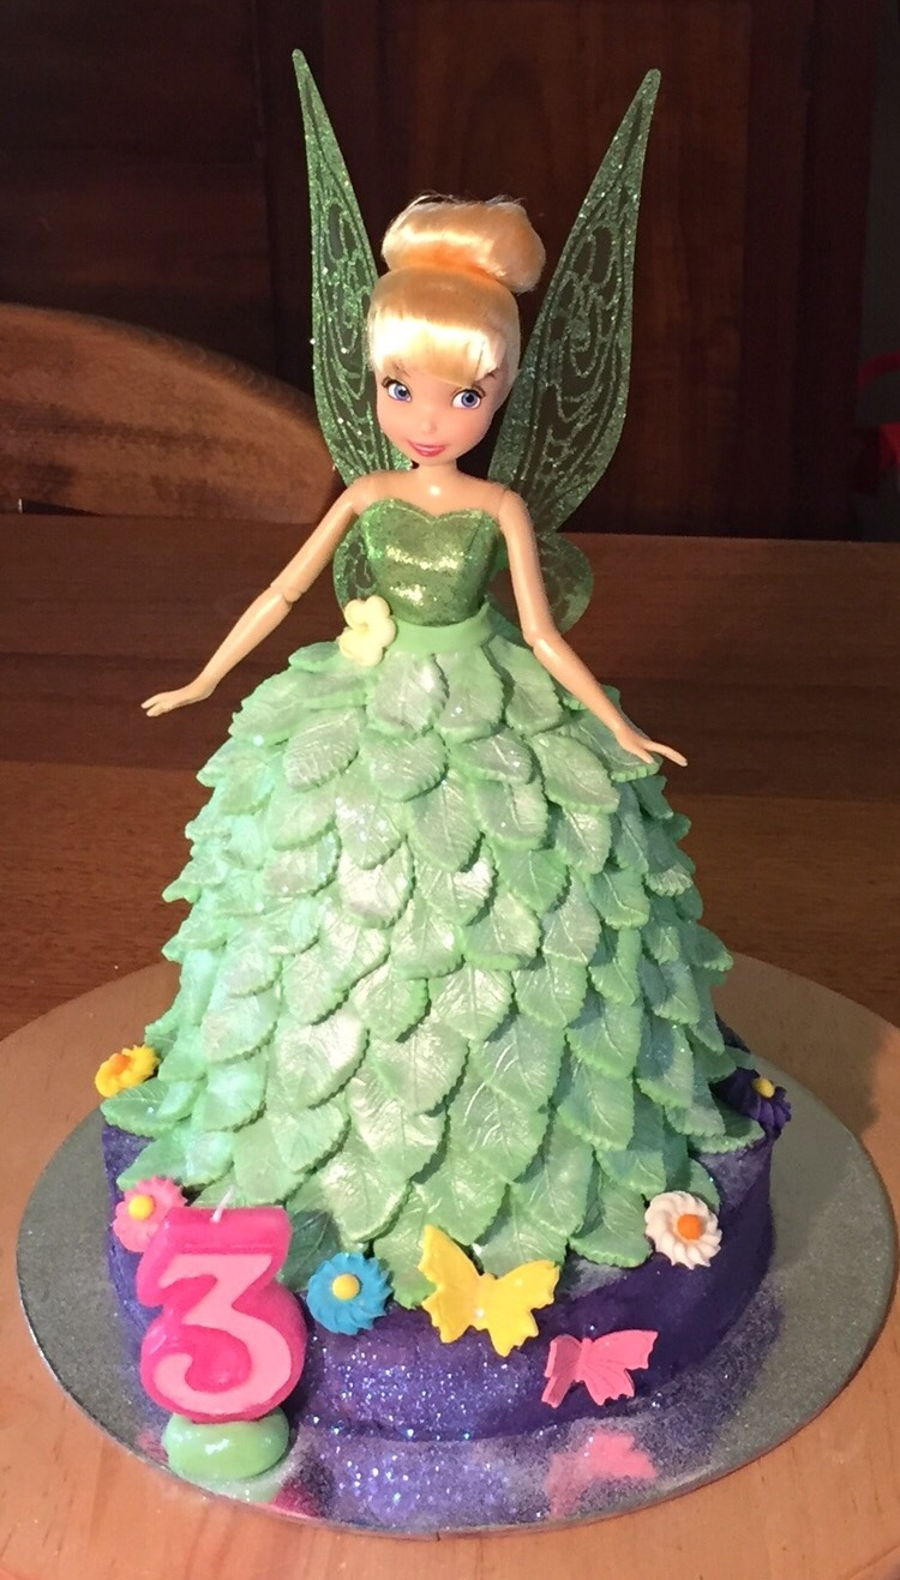 Tinker Belle Birthday Cake For 3 Year Old Cakecentral Com